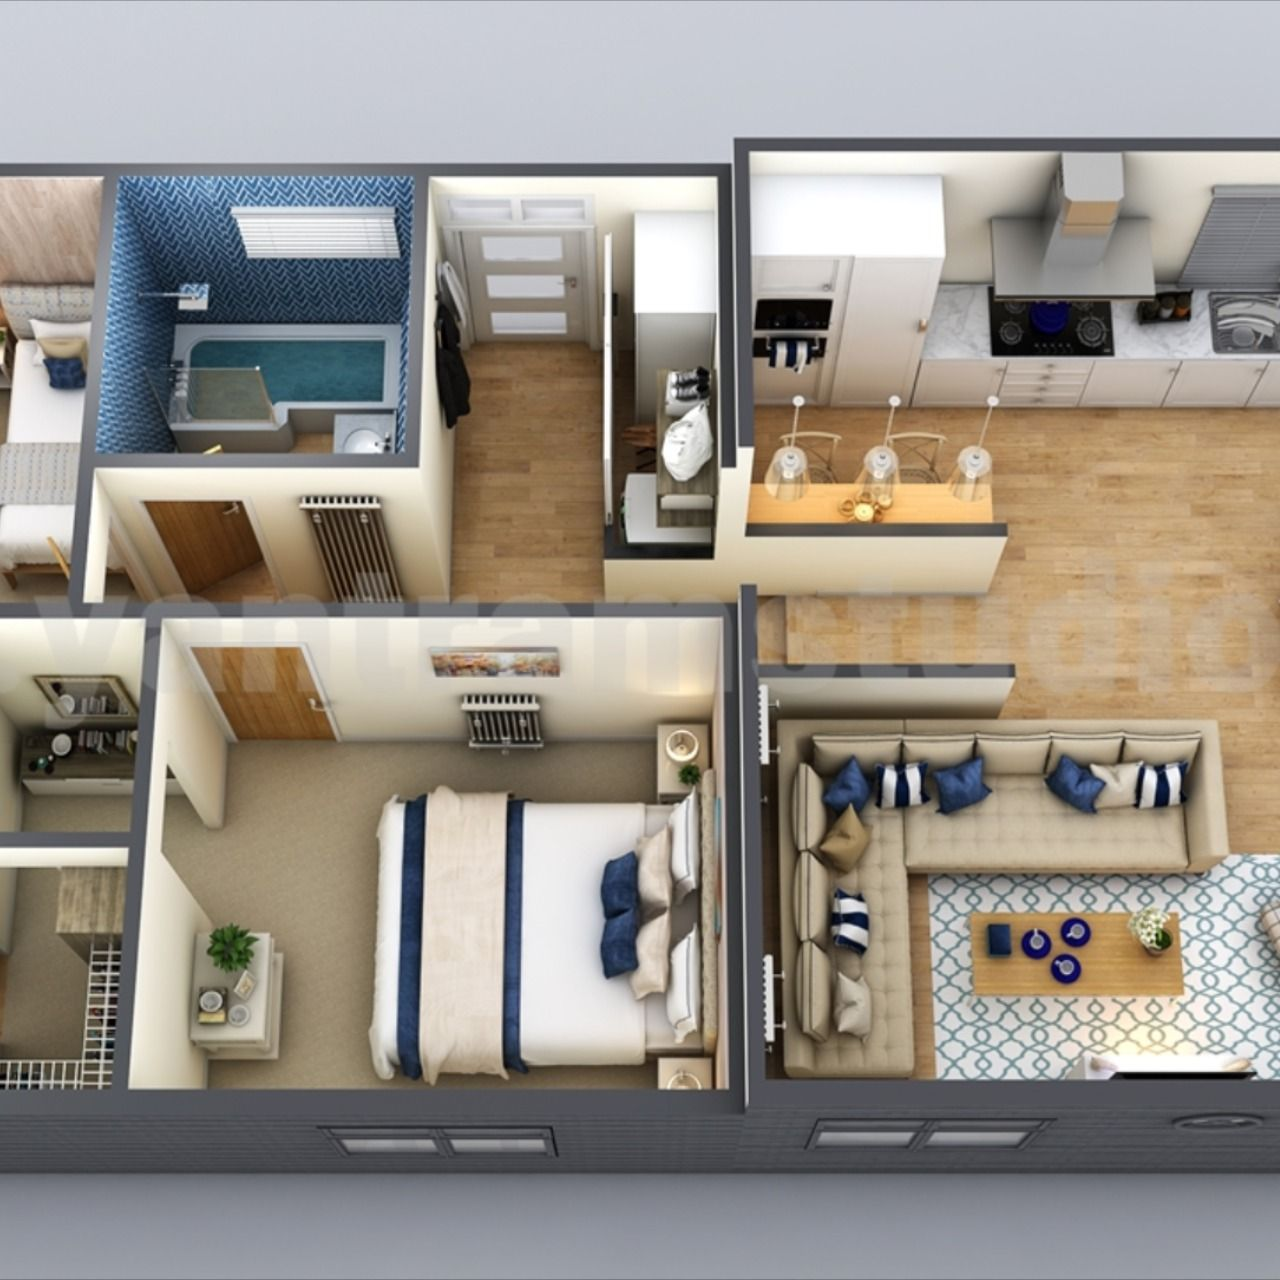 Interactive Small Home Design 3d Floor Plan By Yantarm Architectural Rendering Company Belize In 2020 Small House Design House Design Floor Plan Design